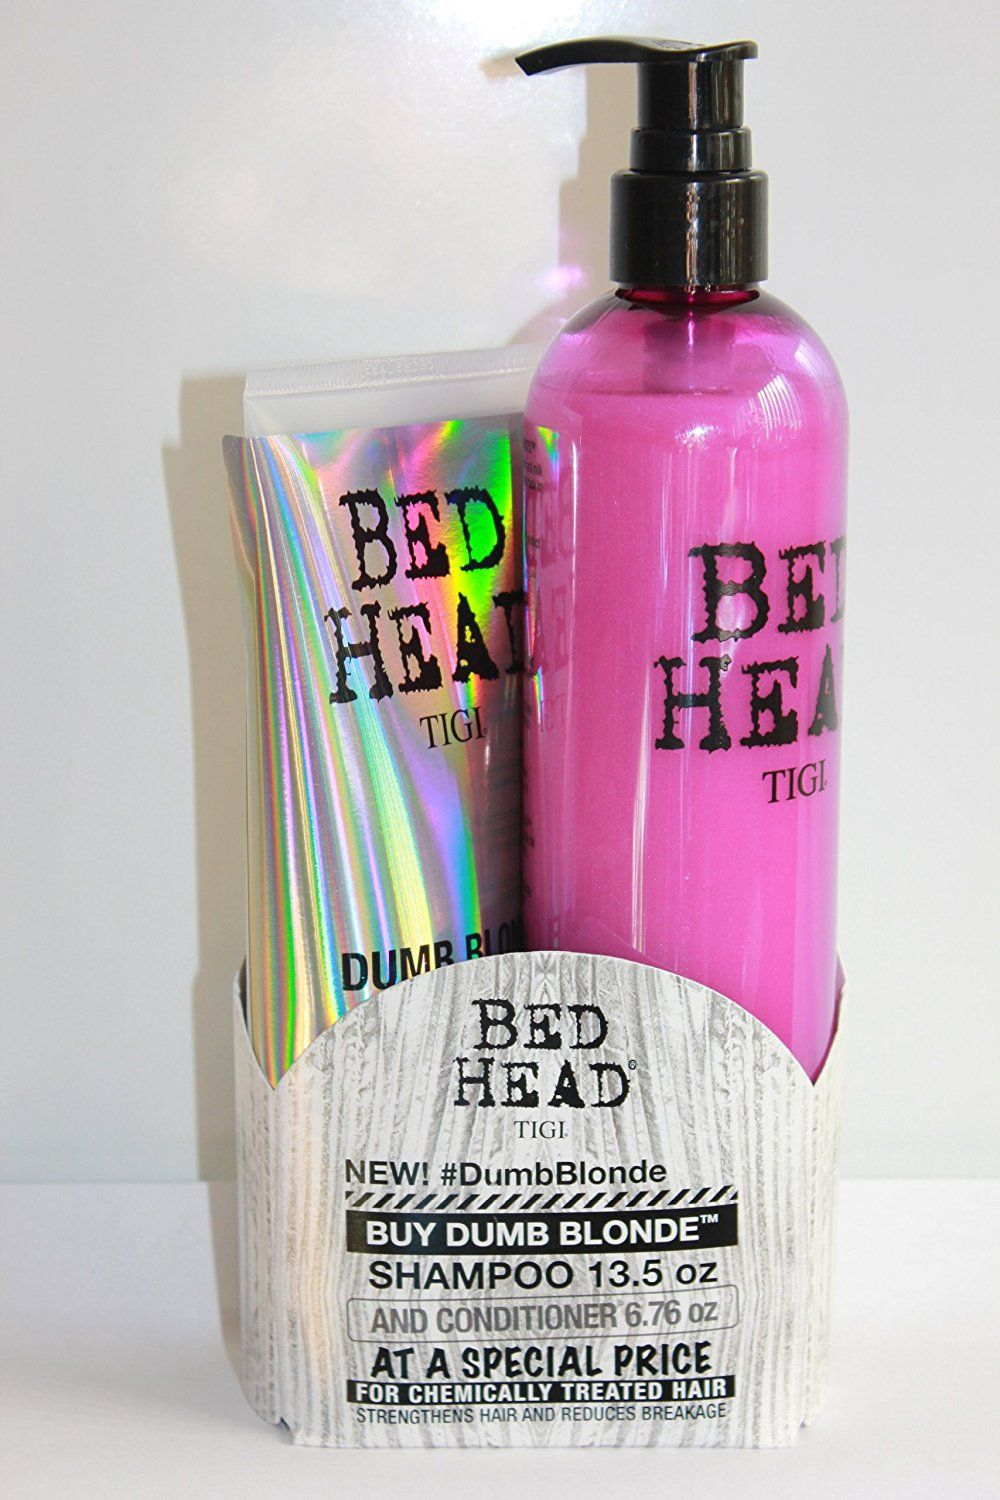 BED HEAD by TIGI, DUMB BLONDE SET for chemically treated